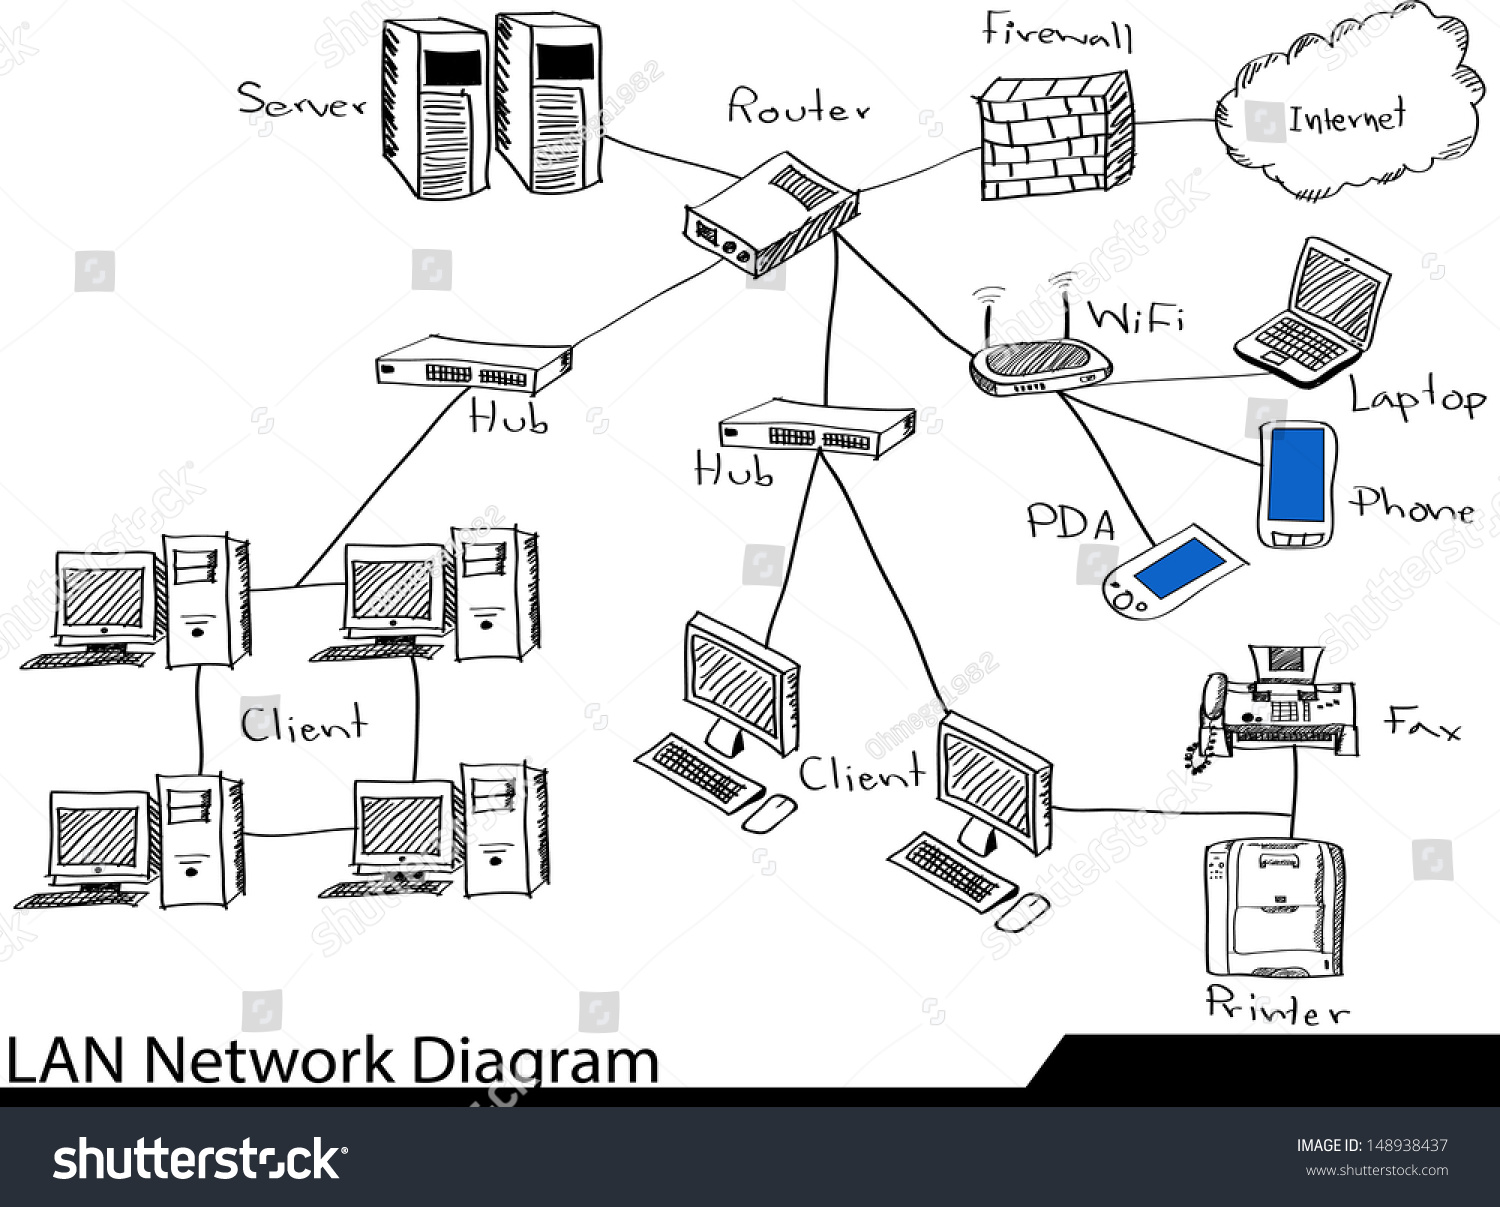 ids network diagram 2007 ford fusion speaker wiring doodle lan vector illustrator stock